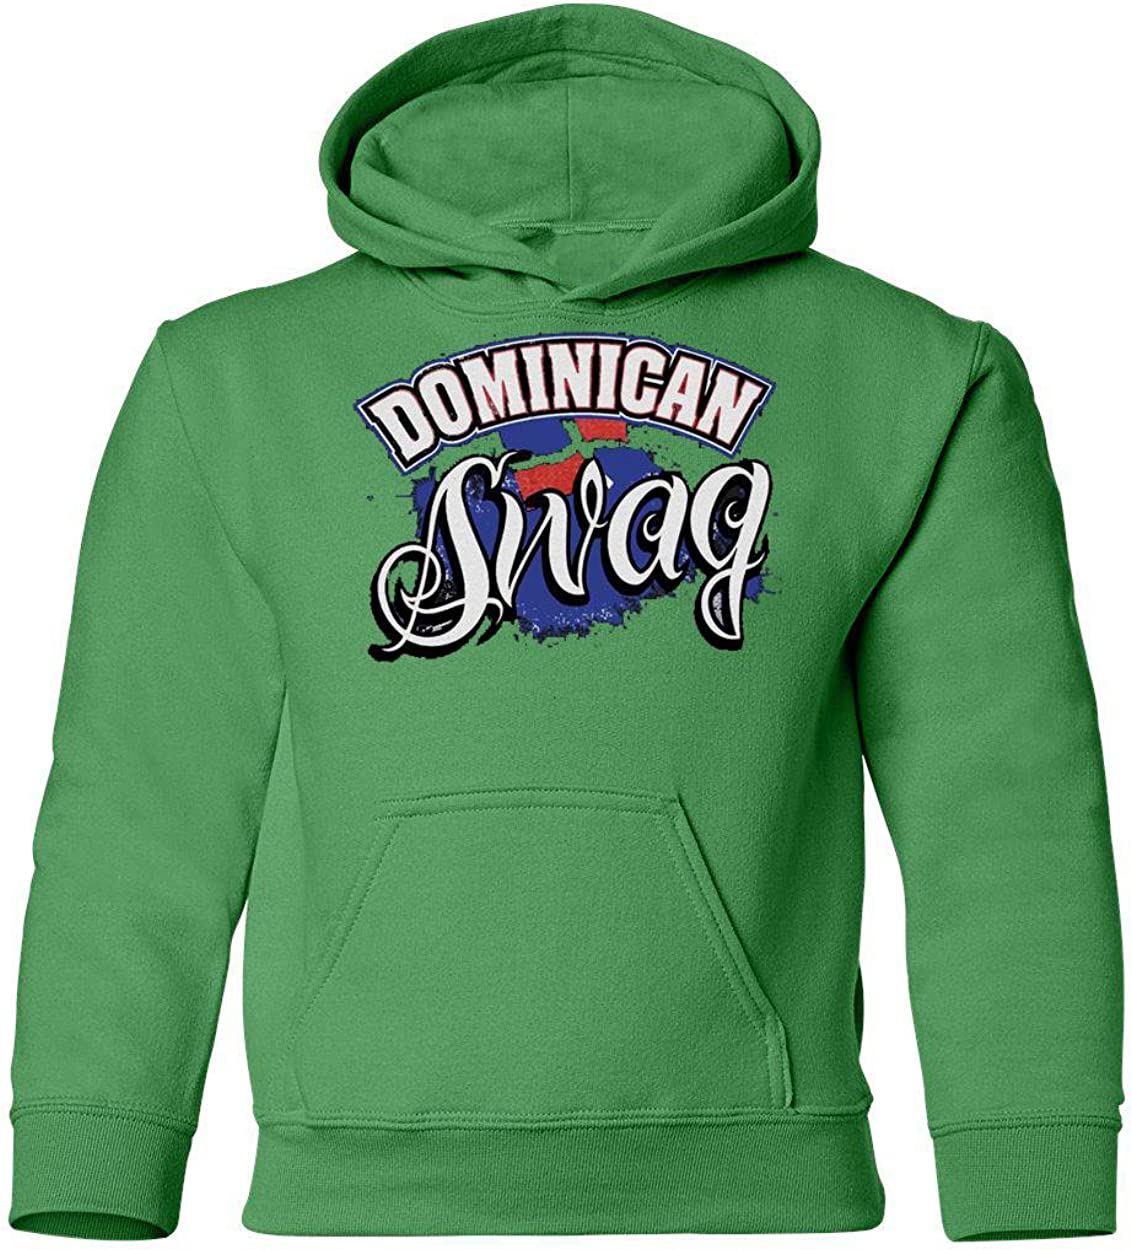 Marky G apparel Boys Dominican SWAG T-Shirt